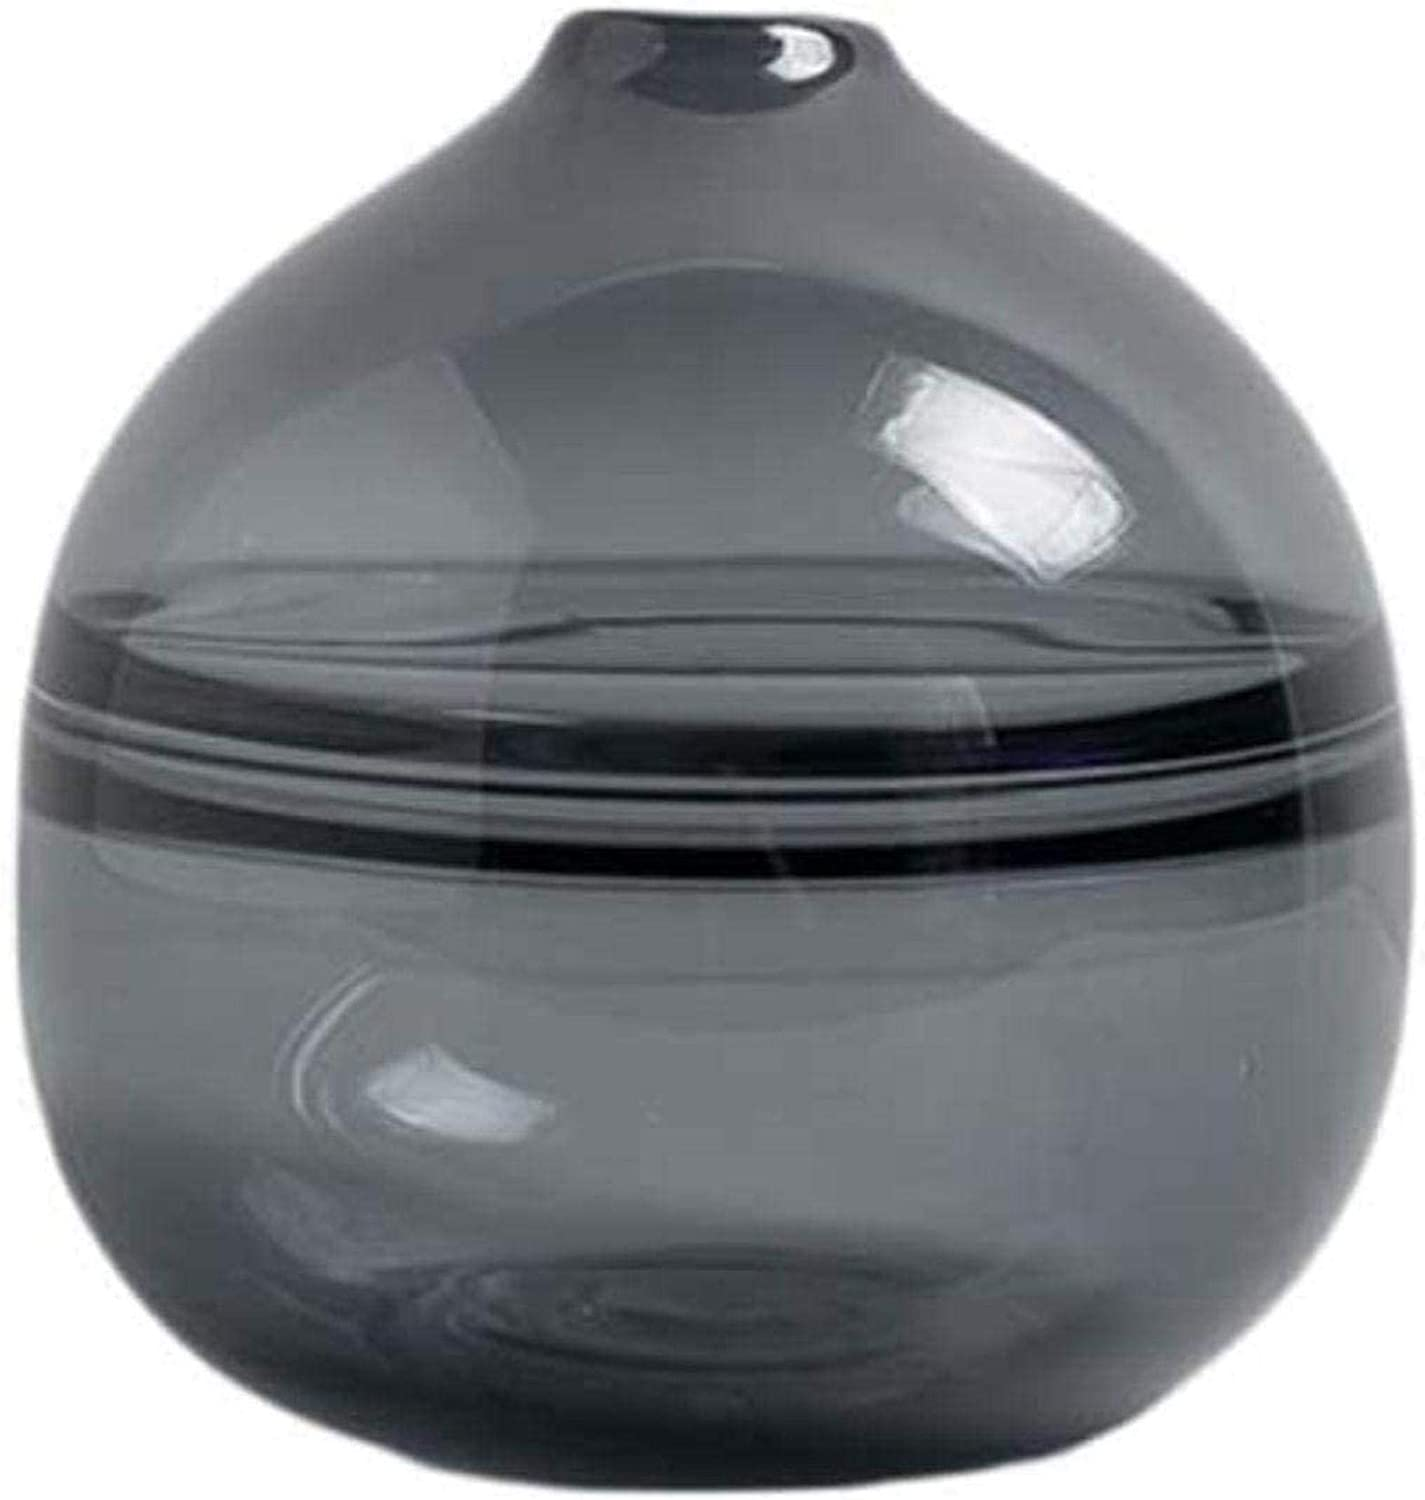 HZYDD VASE Vases Glass Handmade Hydroponic High quality Tr Simple Plant Ranking TOP15 Craft